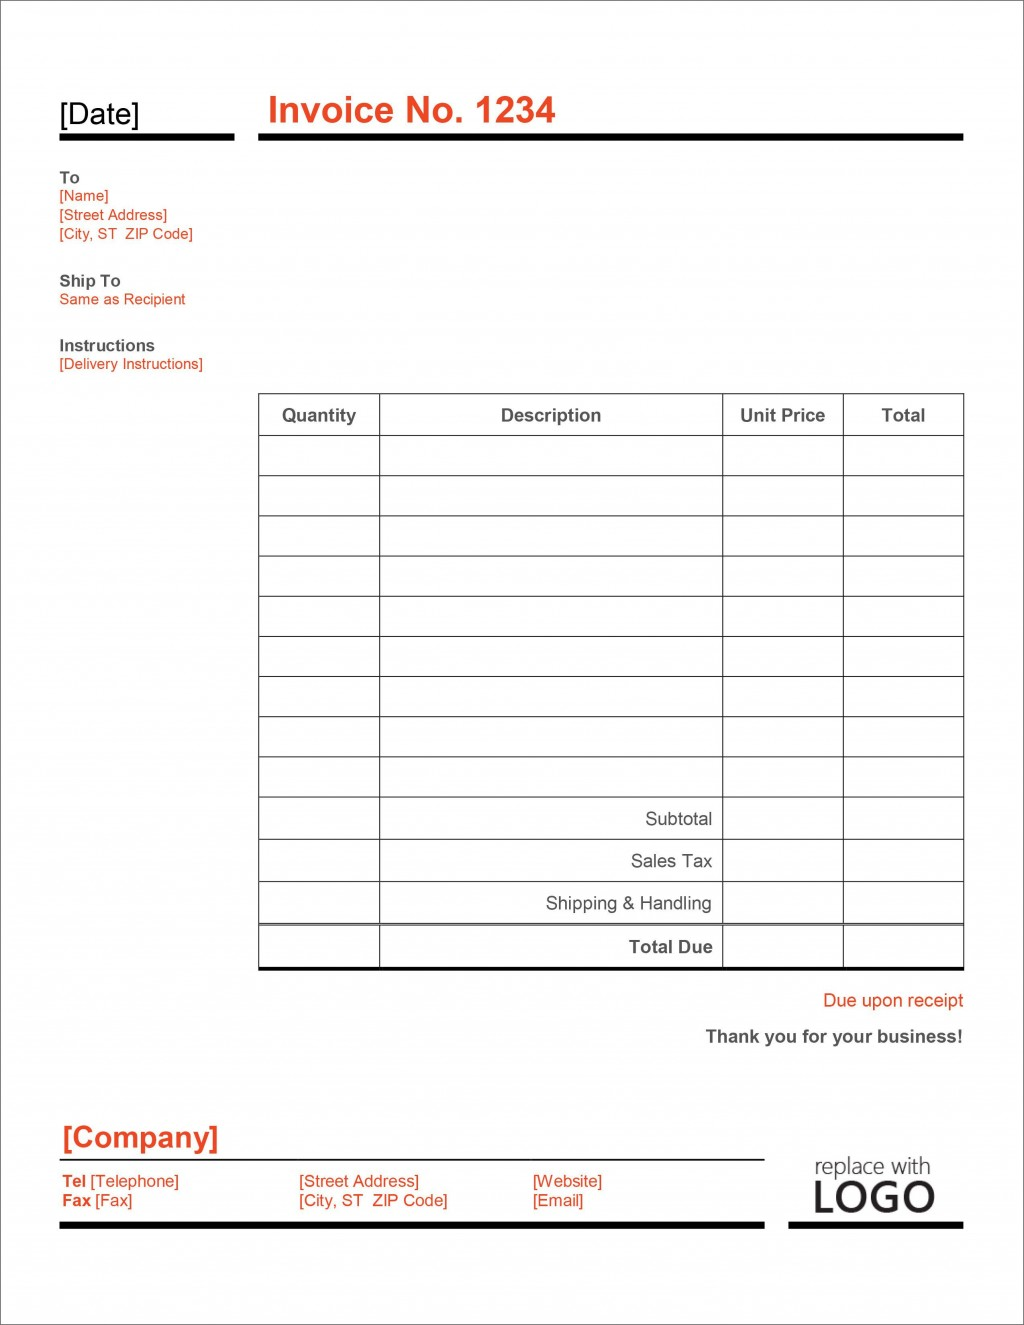 007 Imposing Sale Invoice Template Excel Download Free Picture Large